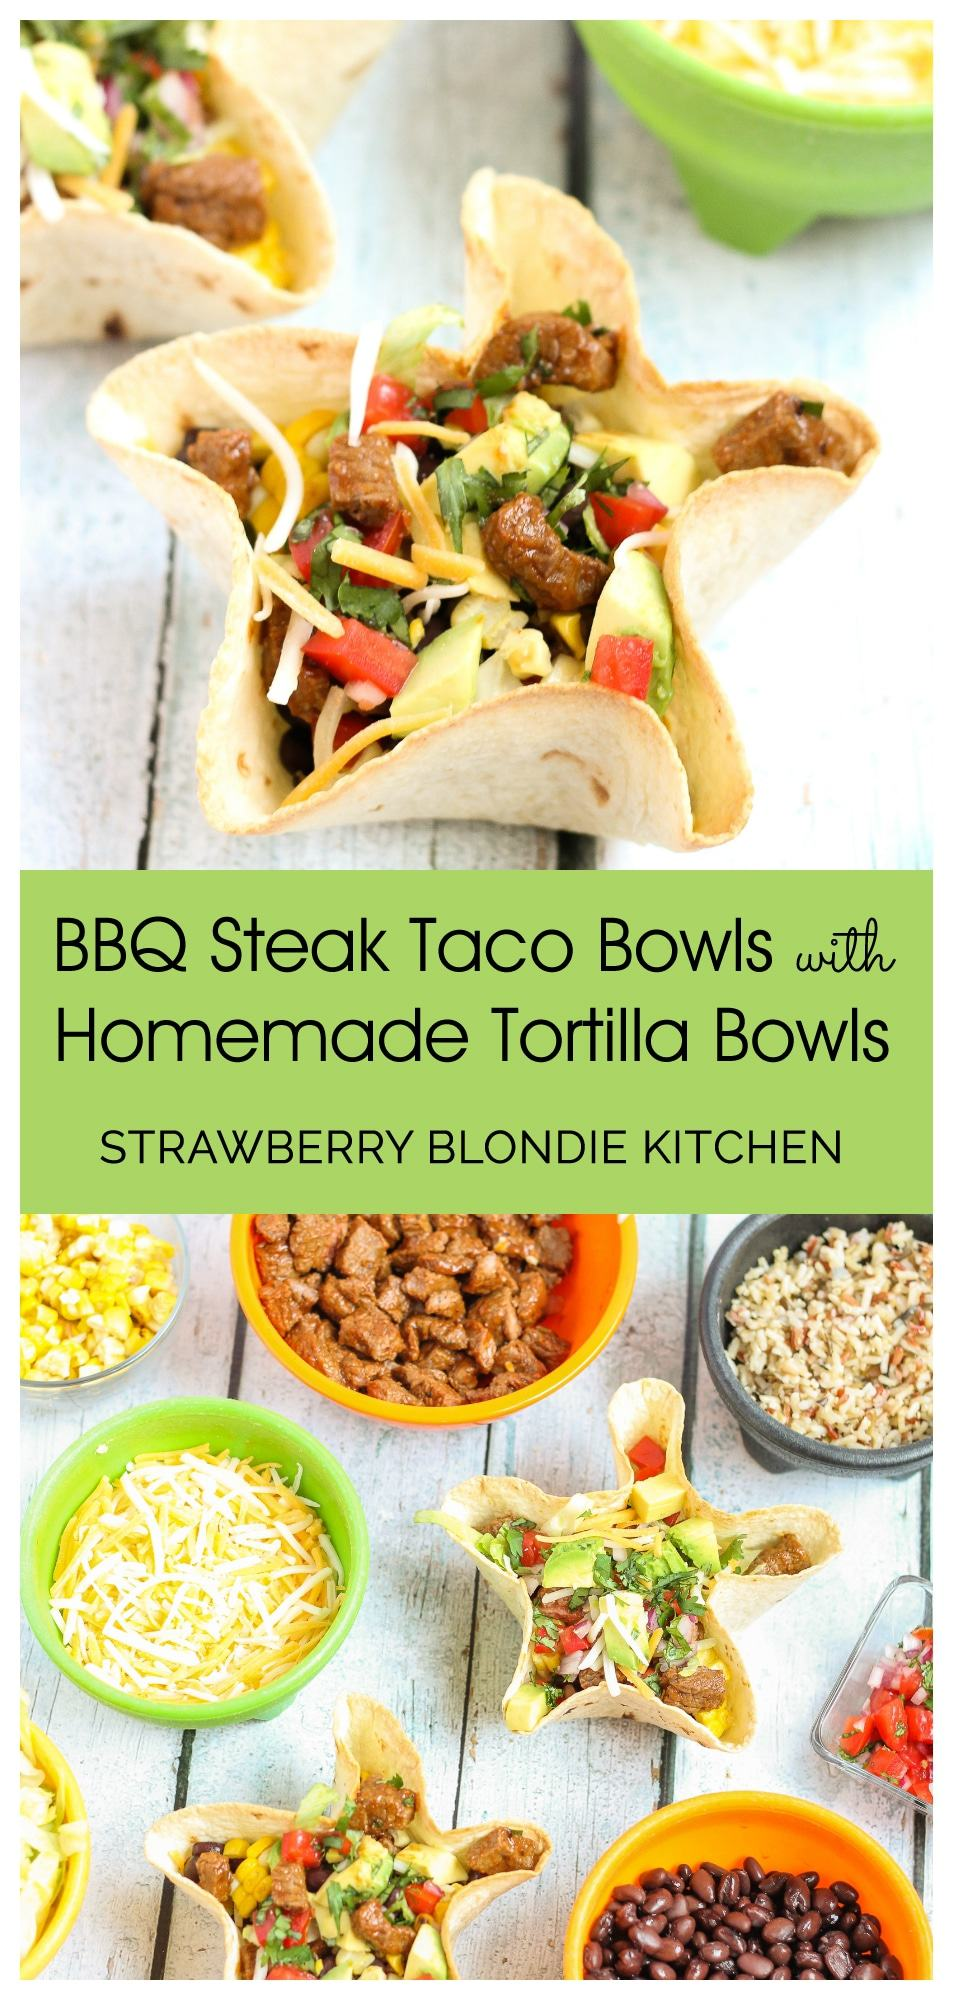 how to make taco bowls in oven